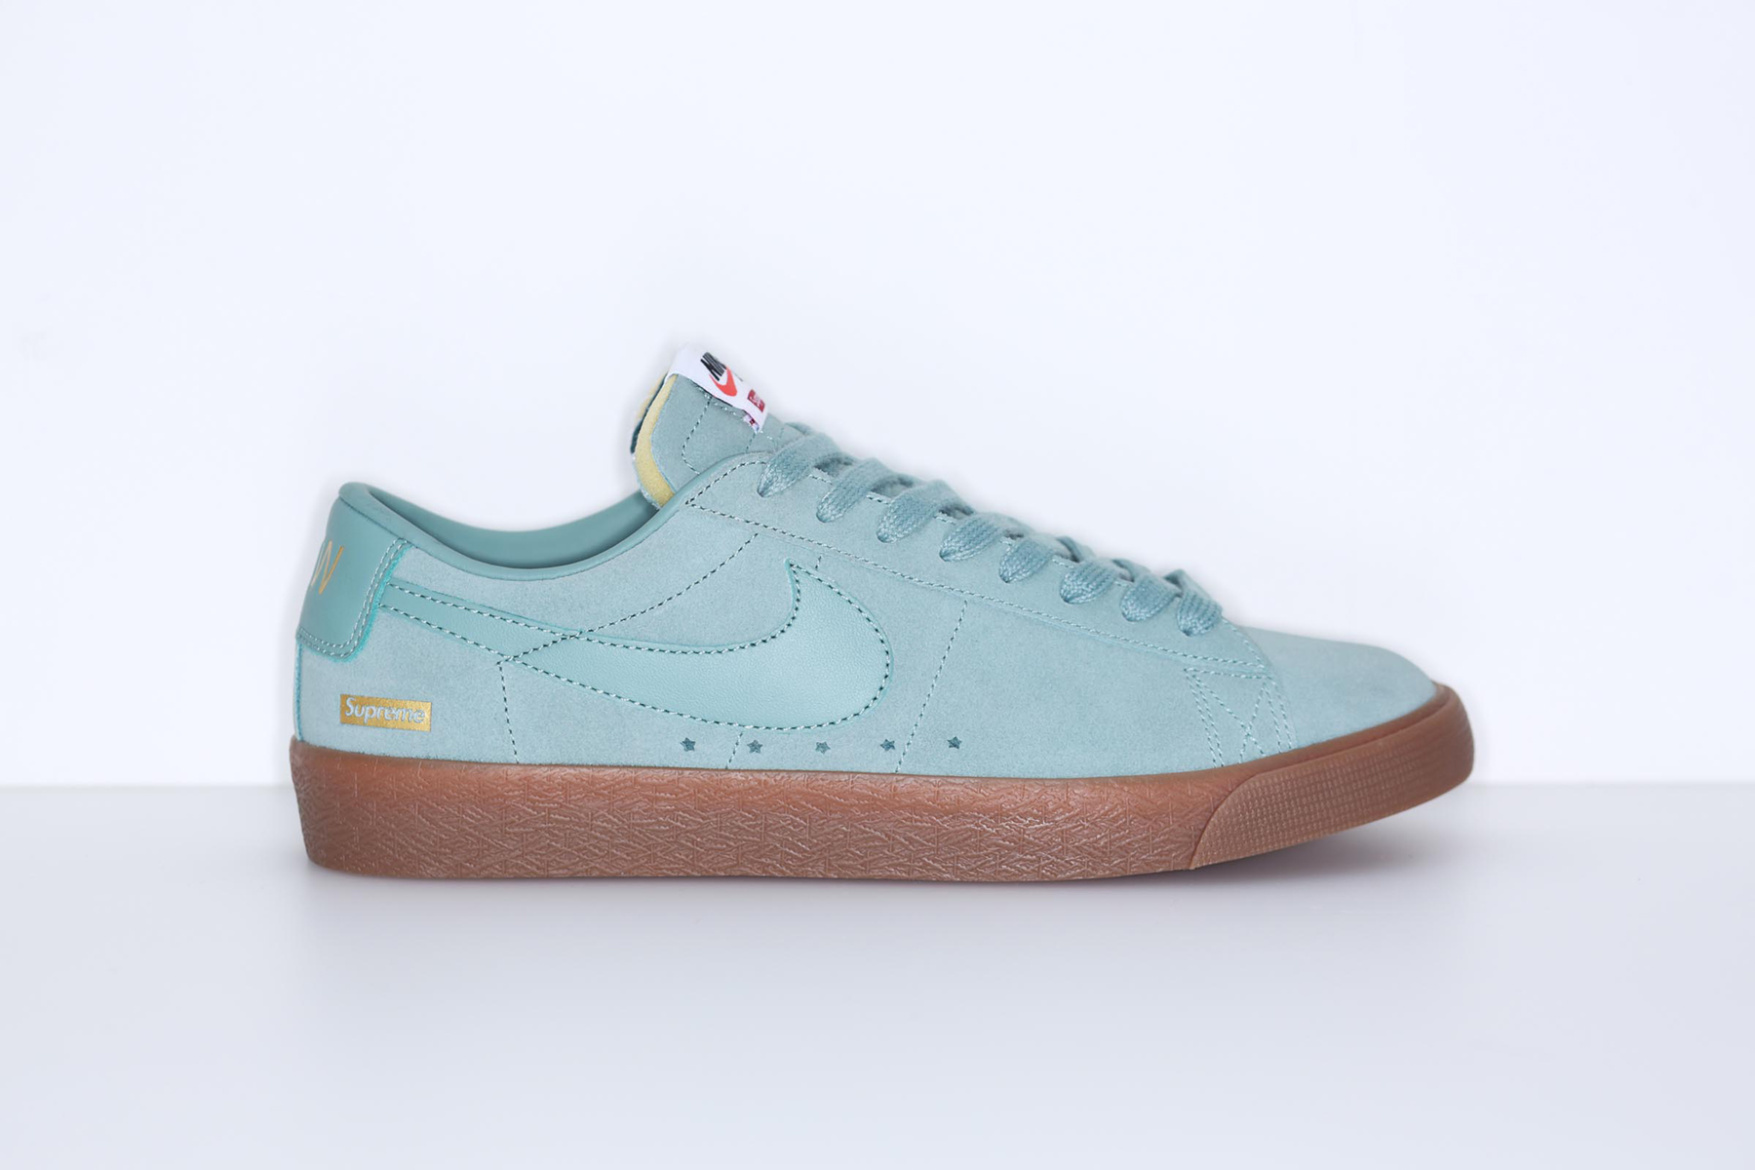 supreme-nike-sb-blazer-low-pink-teal-brown-4